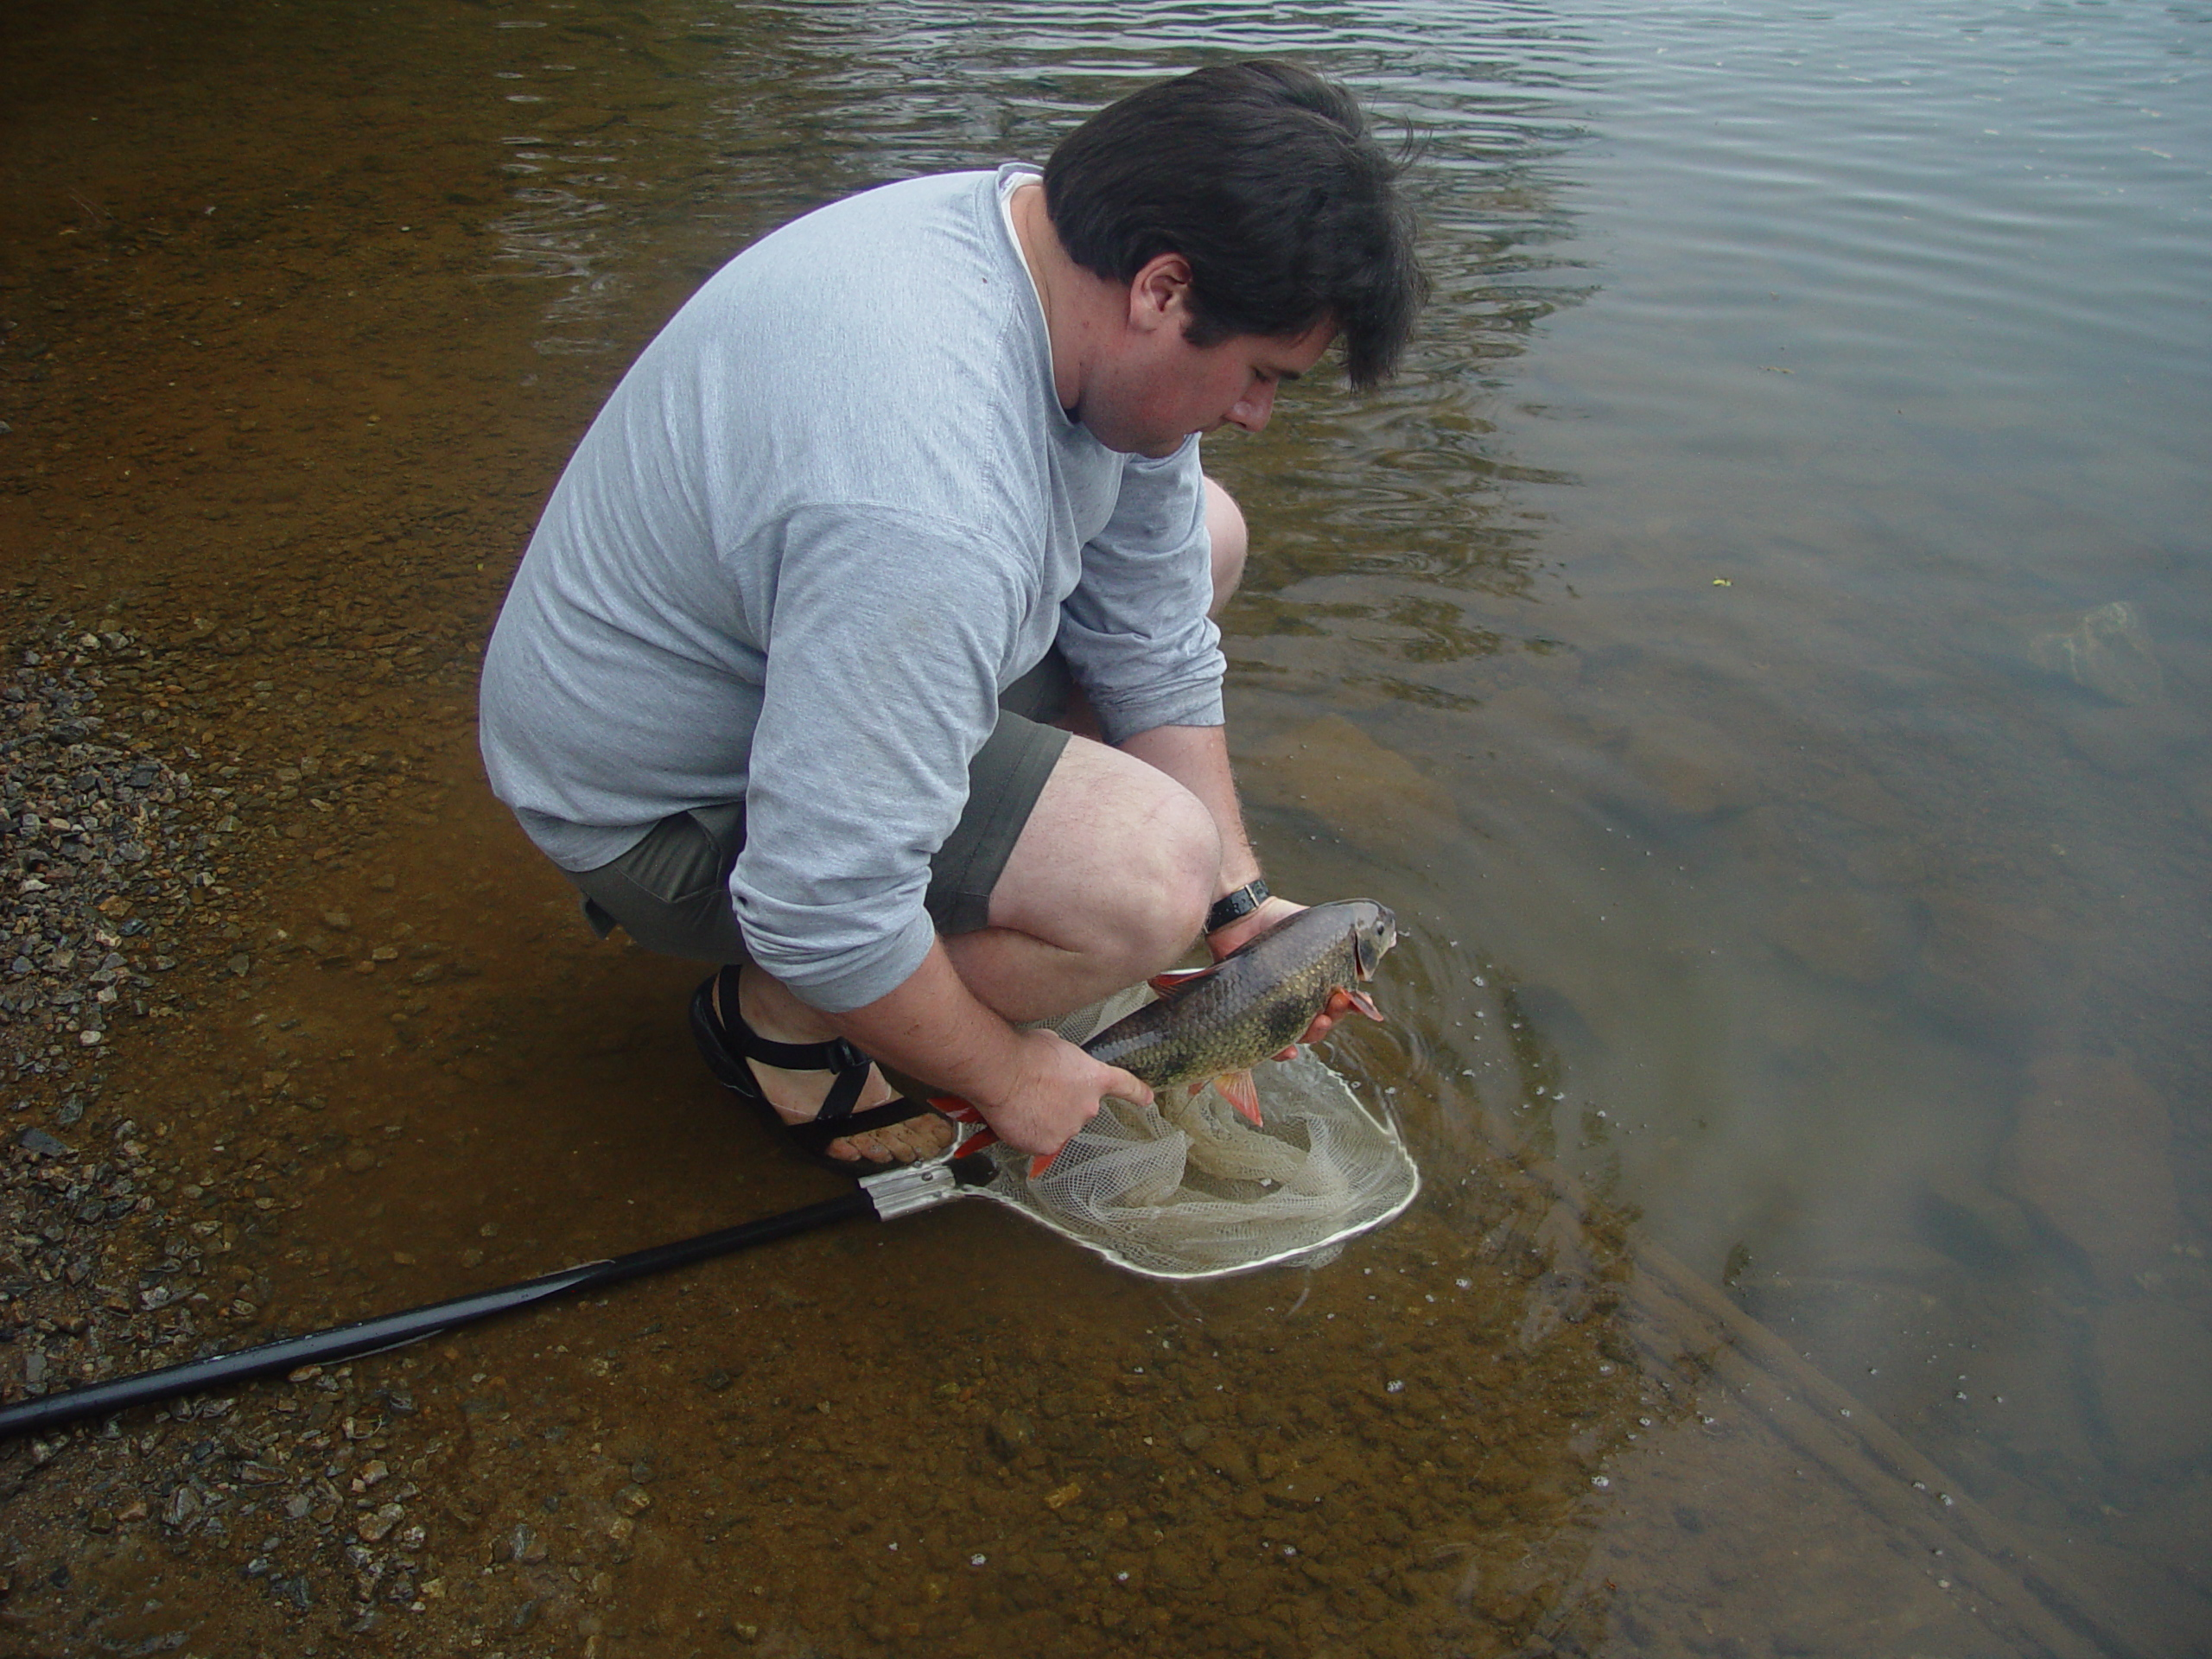 Tim Grabowski releases a radio-tagged robust redhorse into the Ocmulgee River, Georgia.